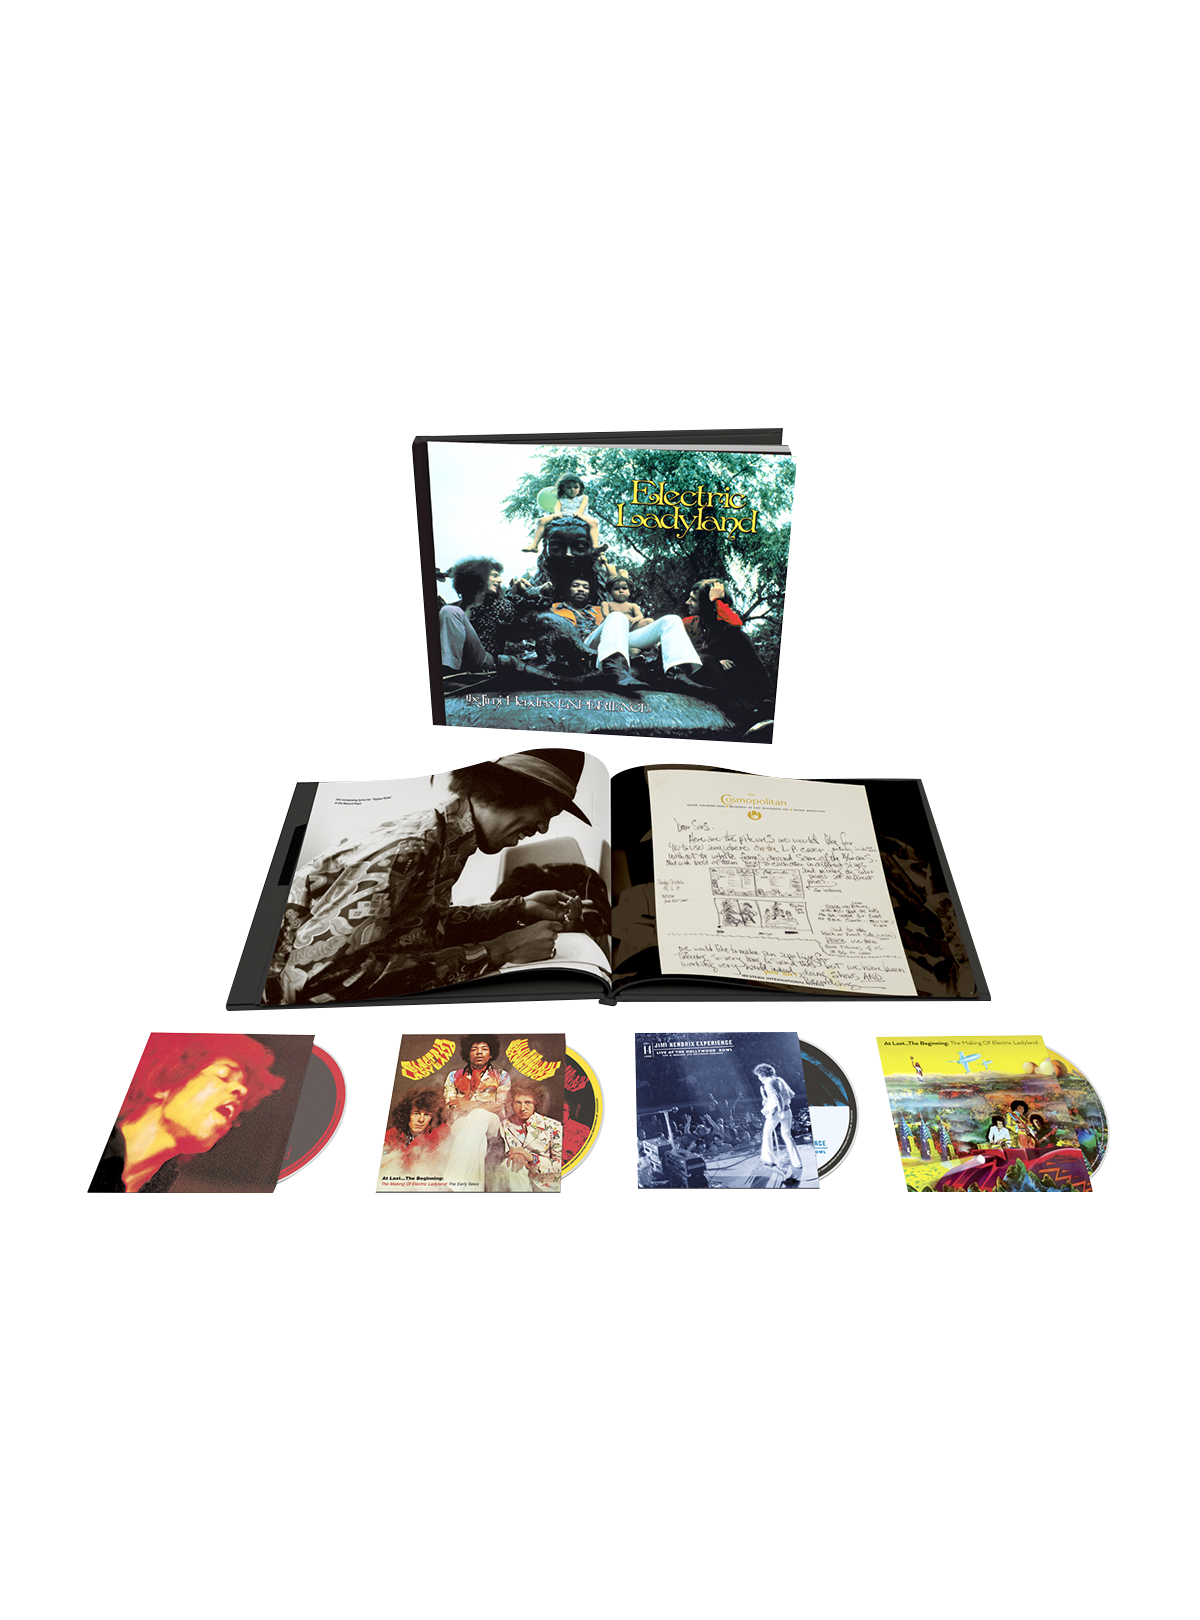 Jimi Hendrix Experience: Electric Ladyland: 50th Anniversary Deluxe Edition CD Box Set